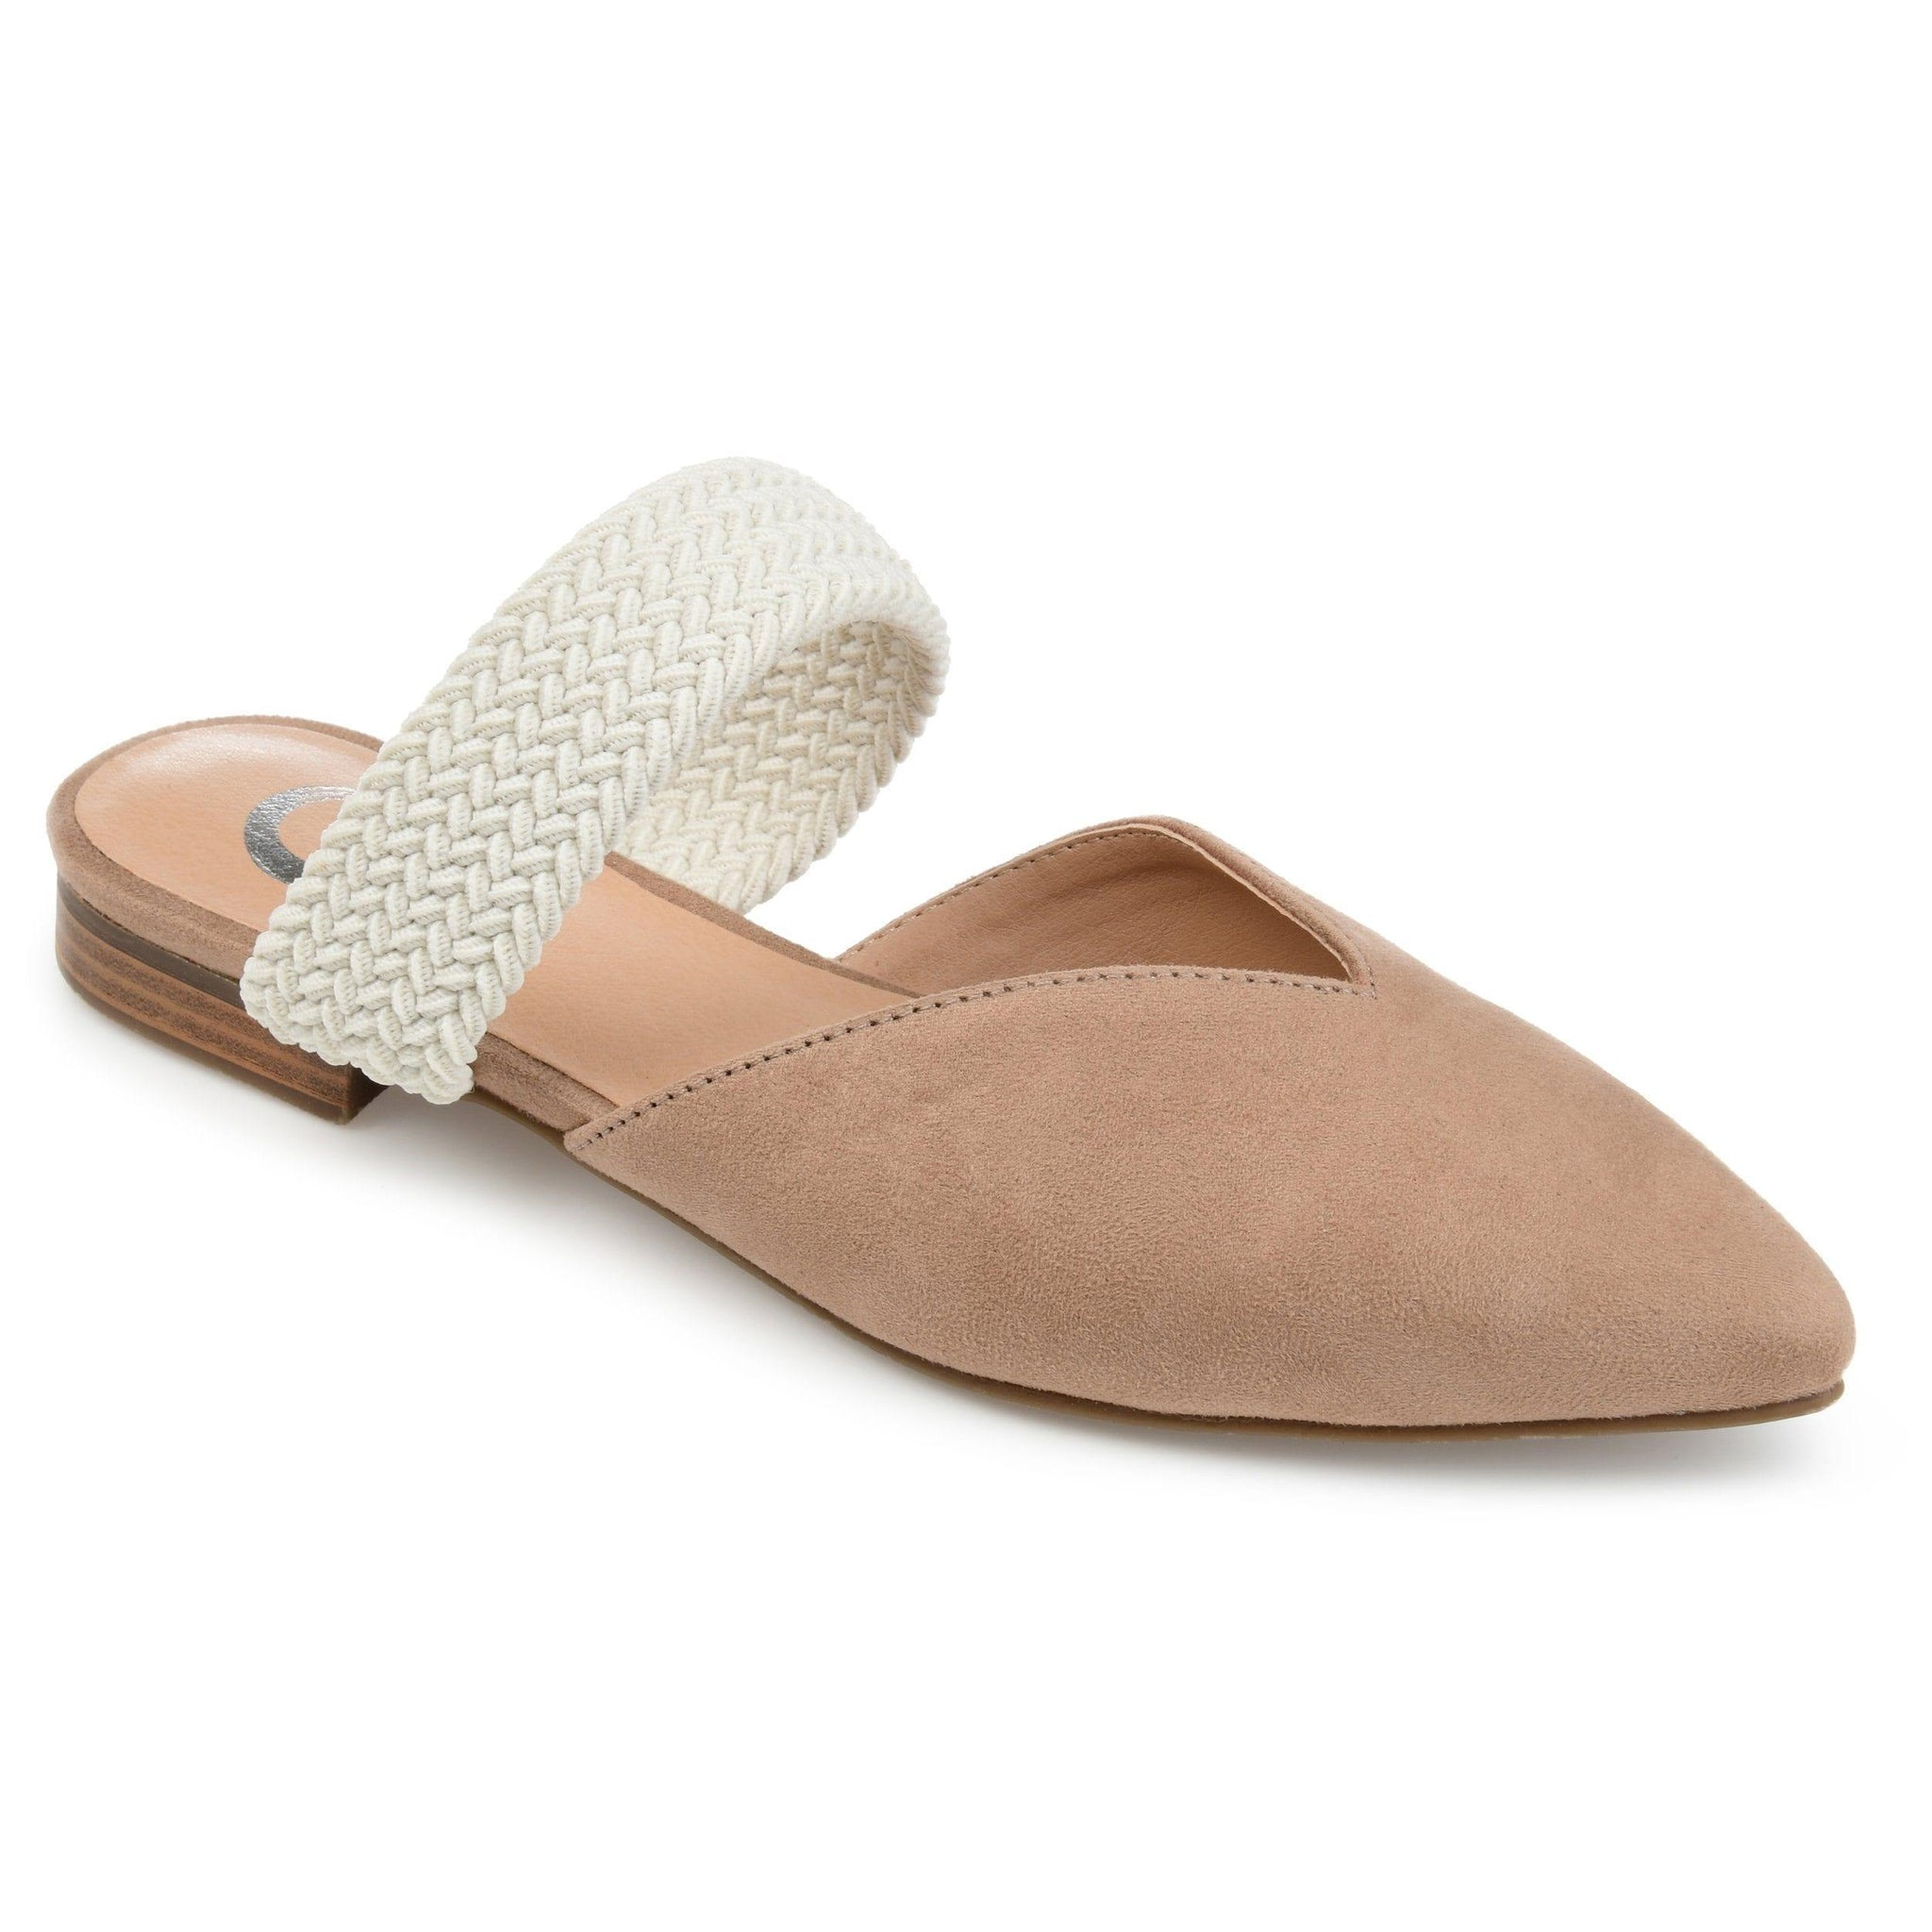 ROXEENE SHOES Journee Collection Taupe 8